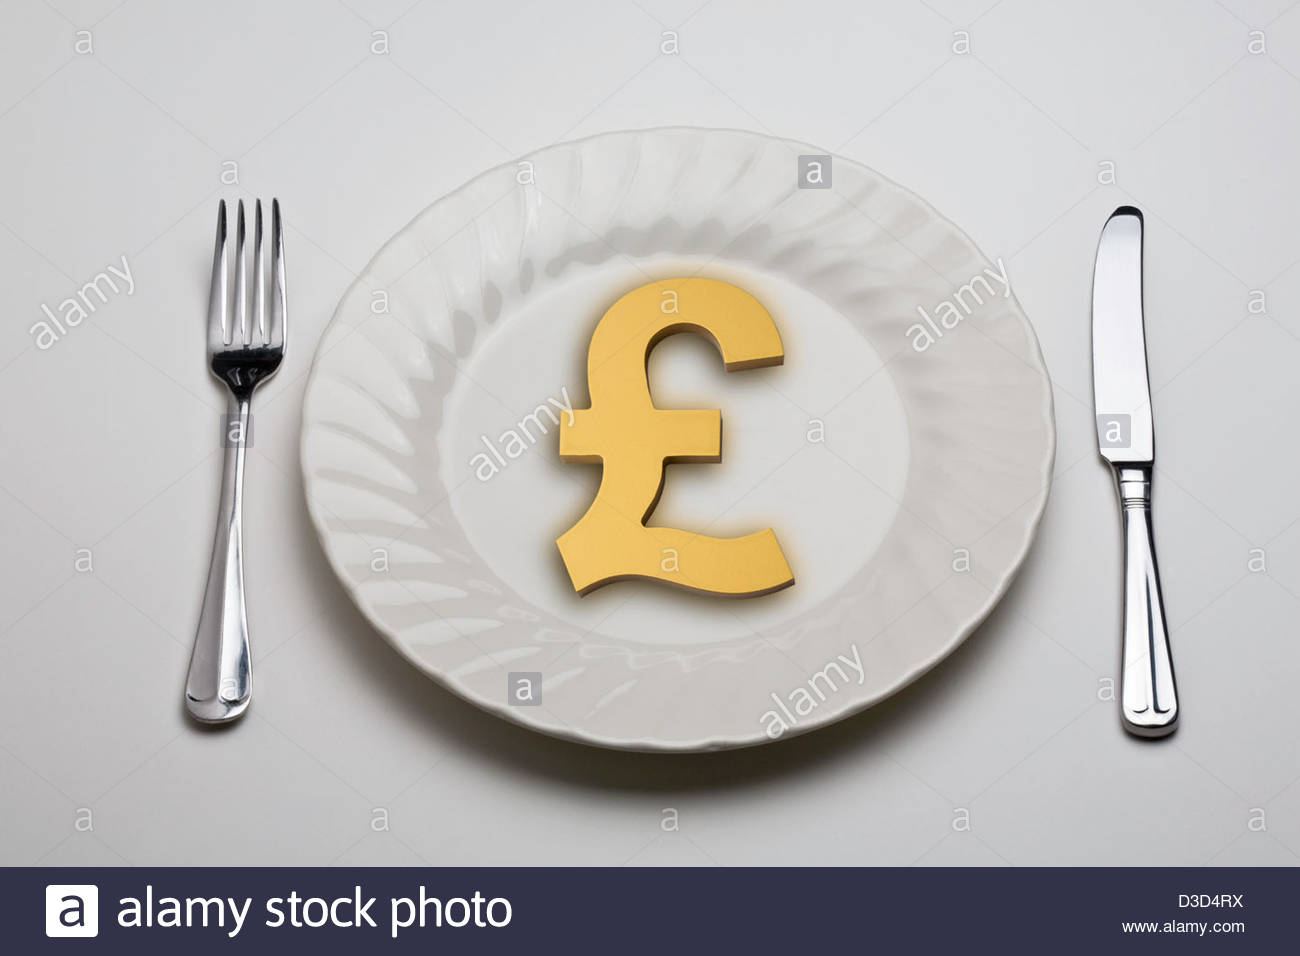 Pound Sterling Symbol On A White Dinner Plate With A Knife And Fork